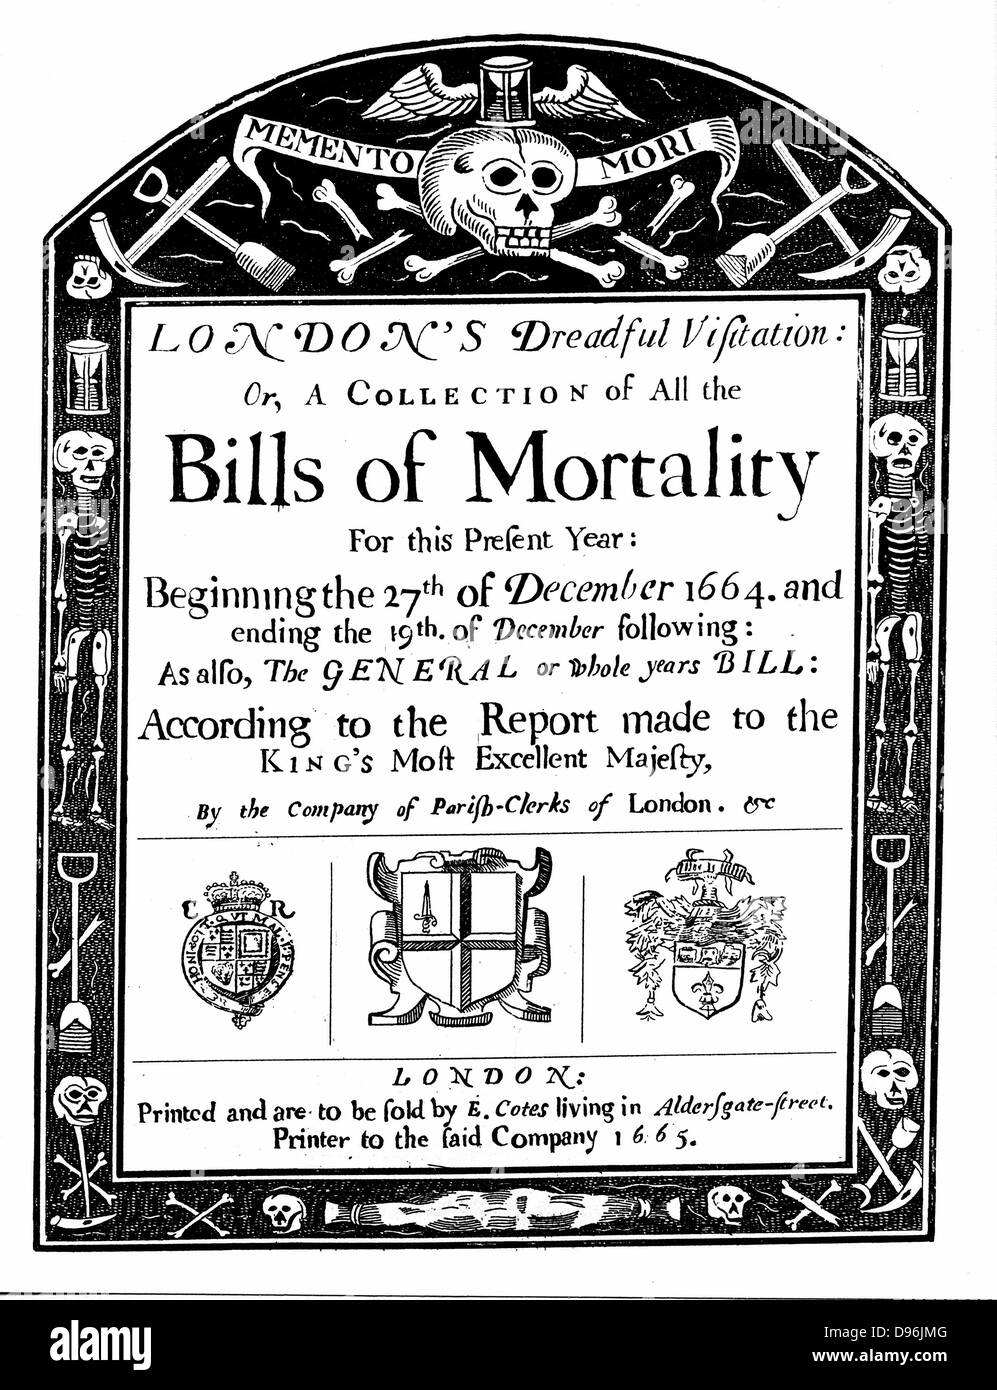 Title page of mortality bill for London for 1664/5, covering part of the period of the Great Plague. John Graunt Stock Photo